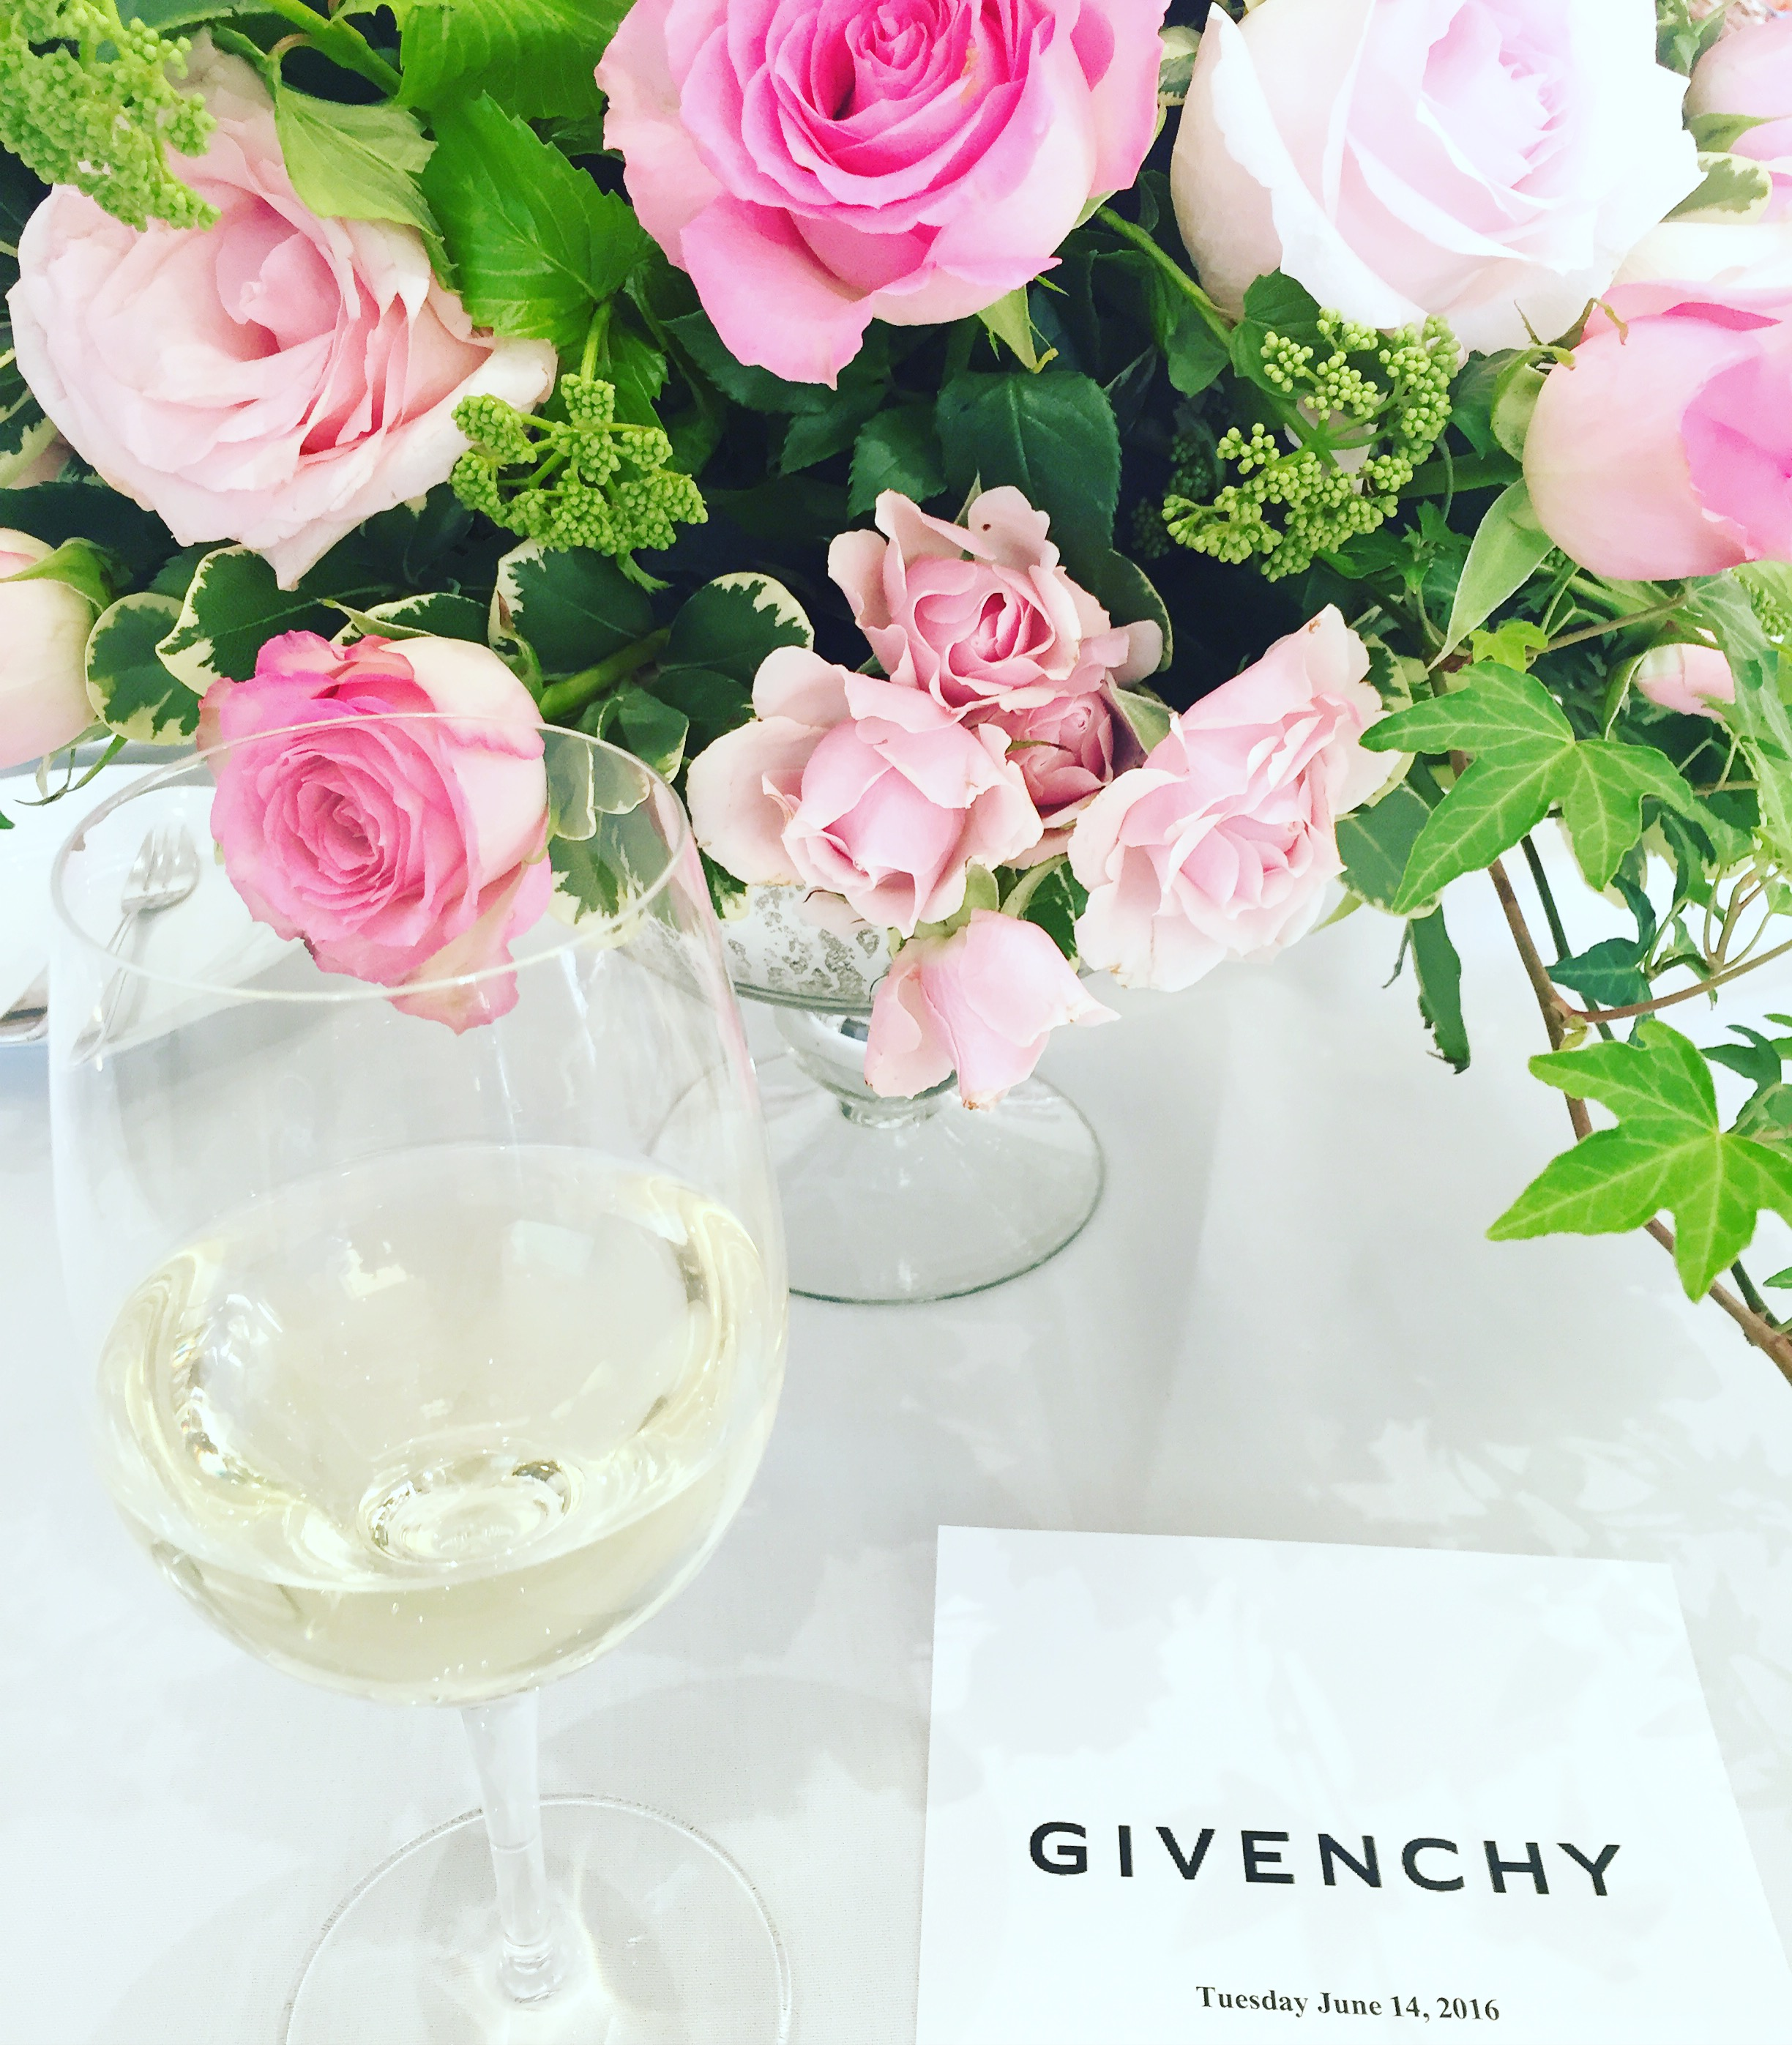 Givenchy- Art of Perfumery Dinner